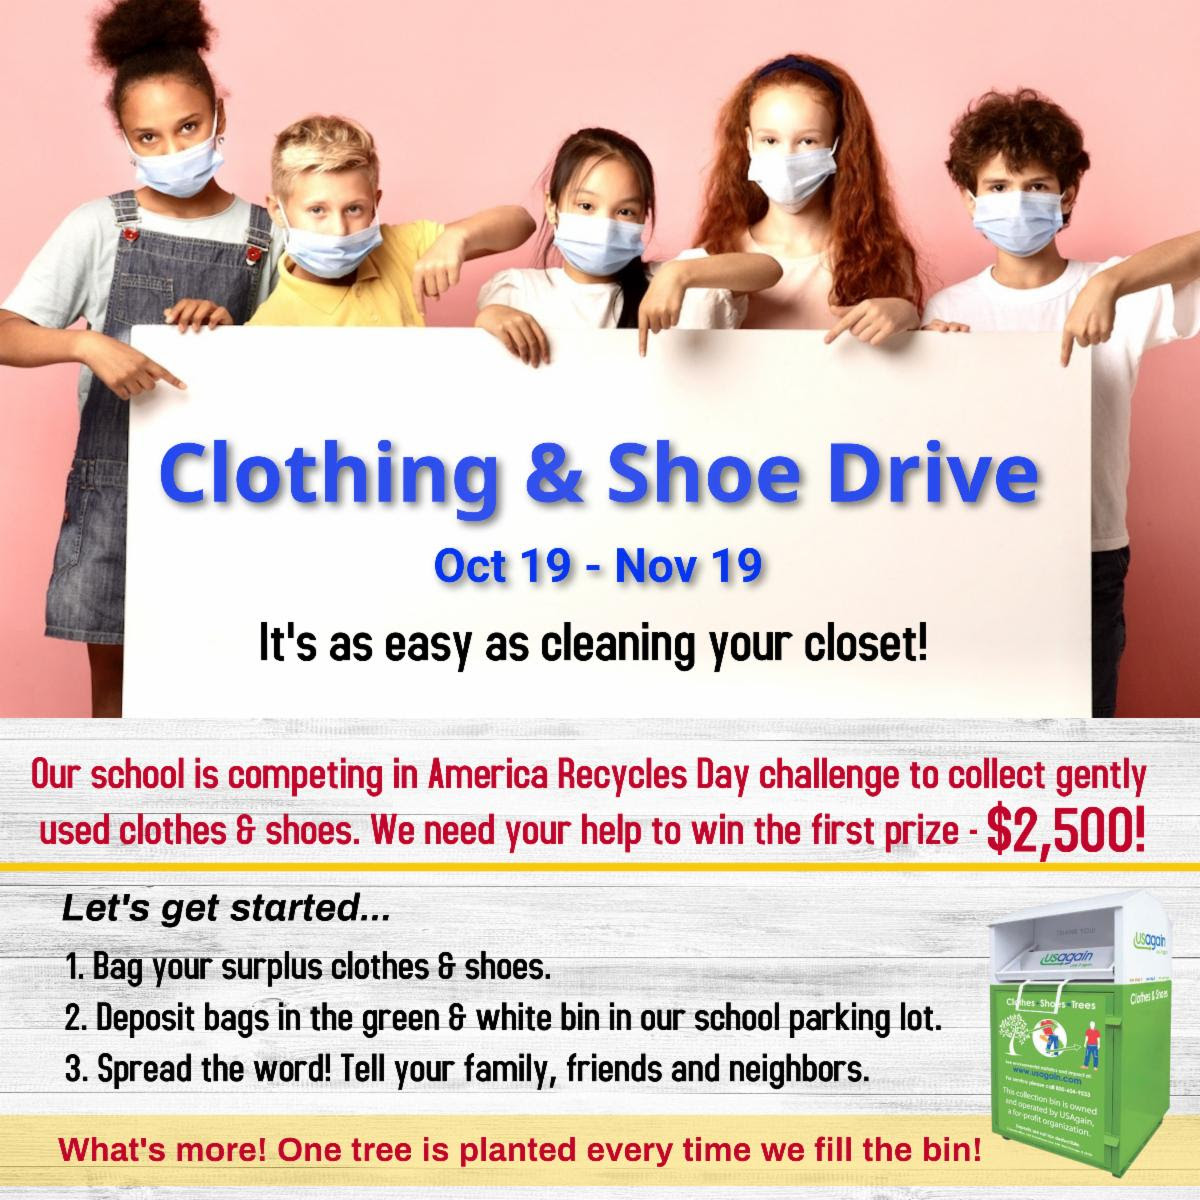 Clothing and Shoe Drive